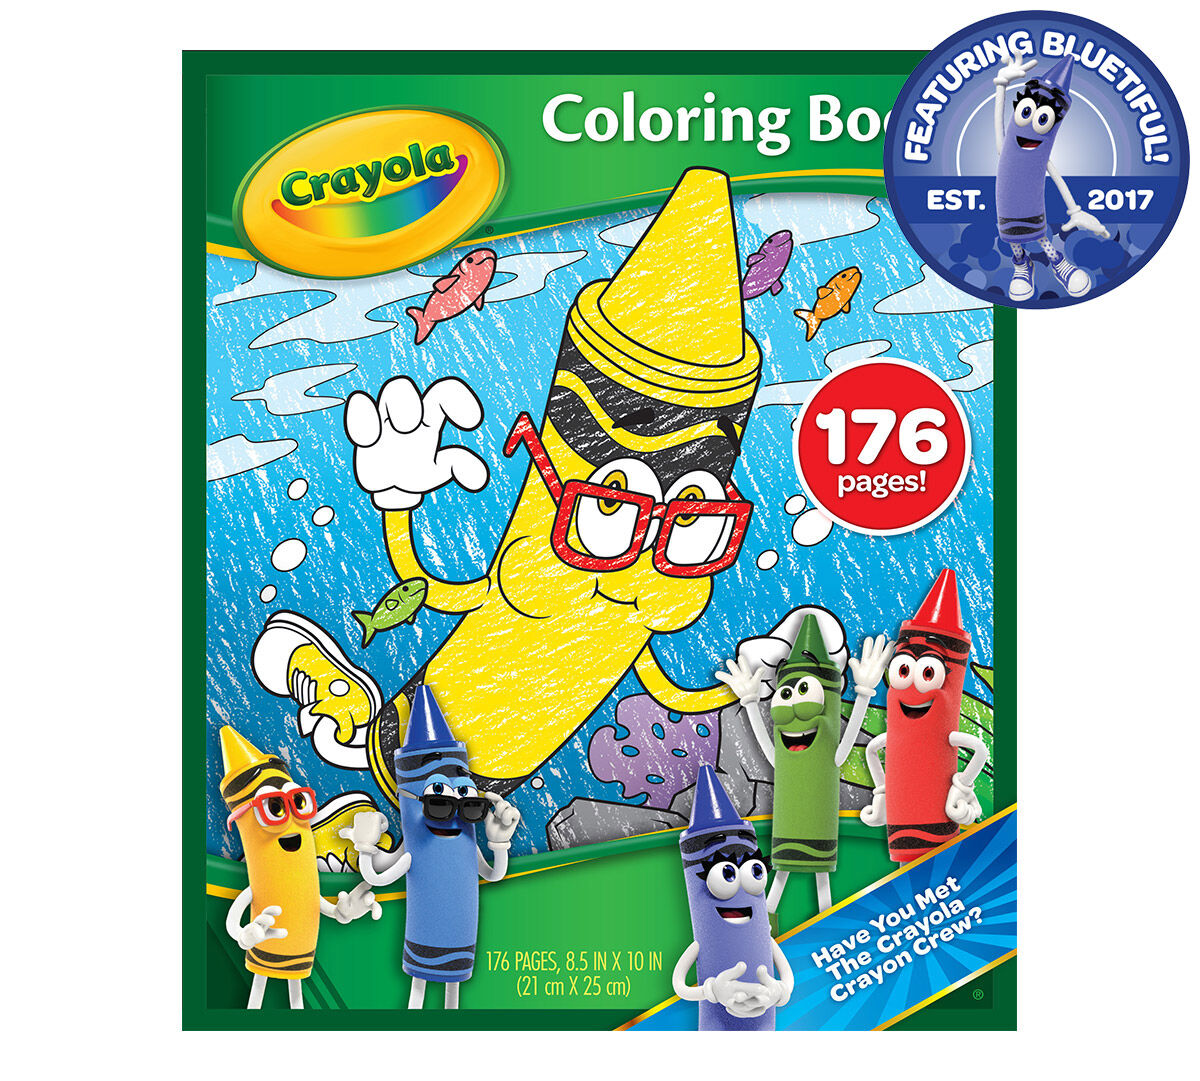 176 pages of fun coloring activities take kids on a journey with our newest Crayola Crayon, Bluetiful. Let your little ones get to know new blue and her friends with each new crayon-themed coloring page. What better way to celebrate our new color than with a coloring book all about her.